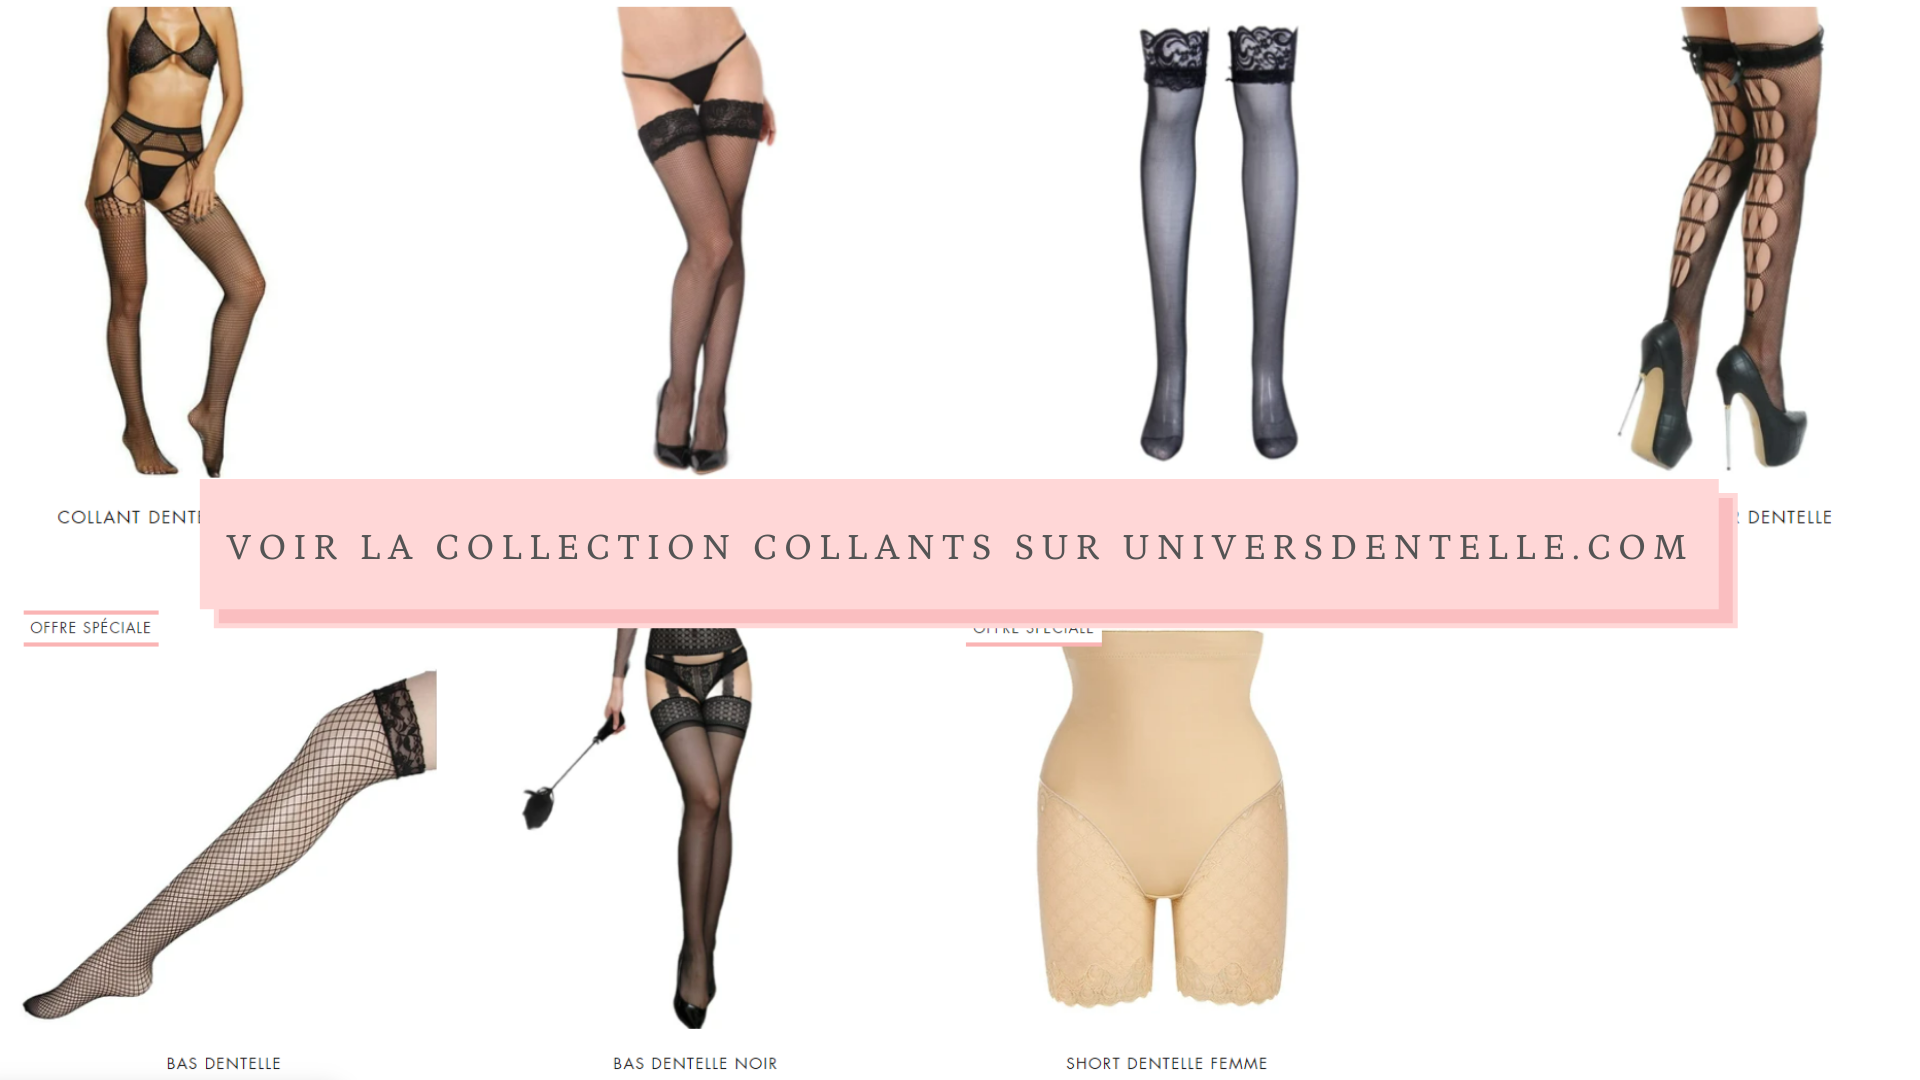 Collection Collants Dentelle